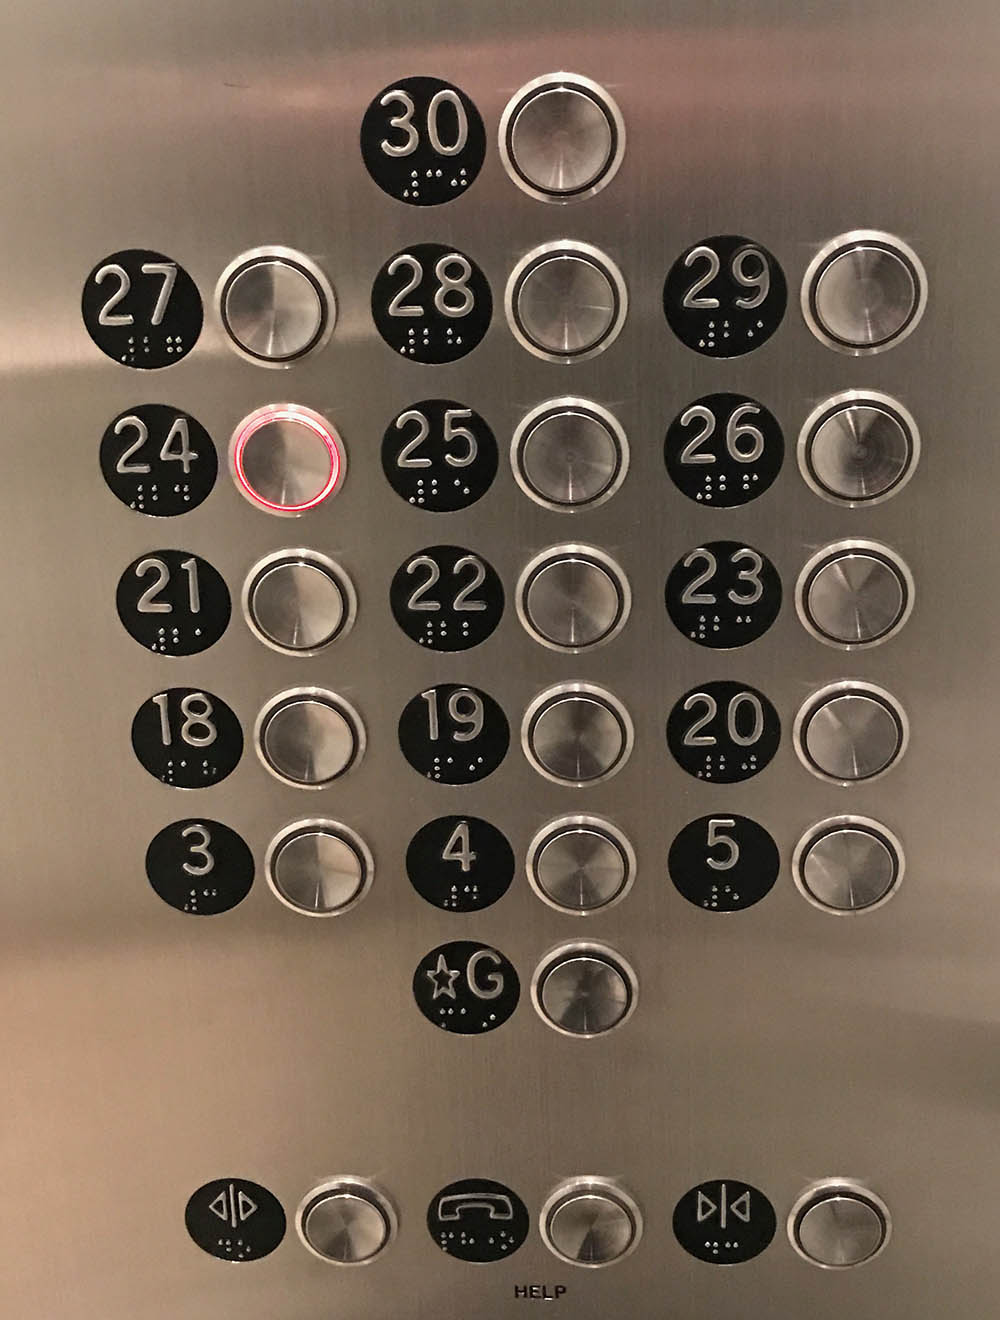 7 out of 8 elevators' panel look like this